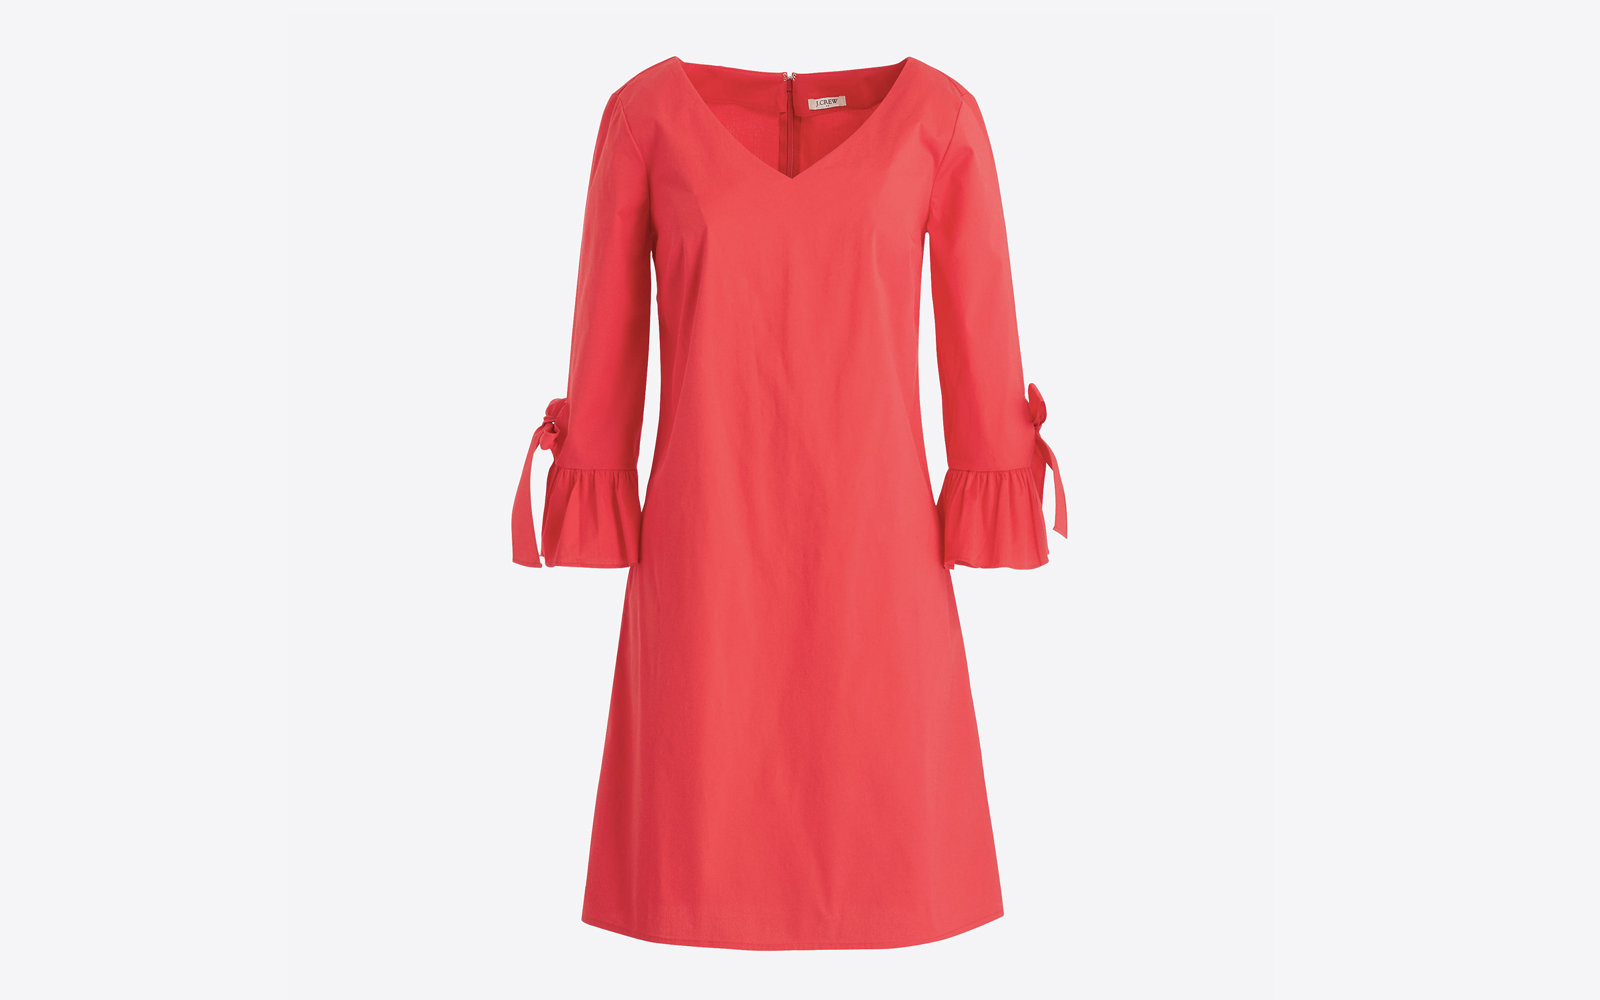 Ruffle Tie-sleeve Dress in Belvedere Red